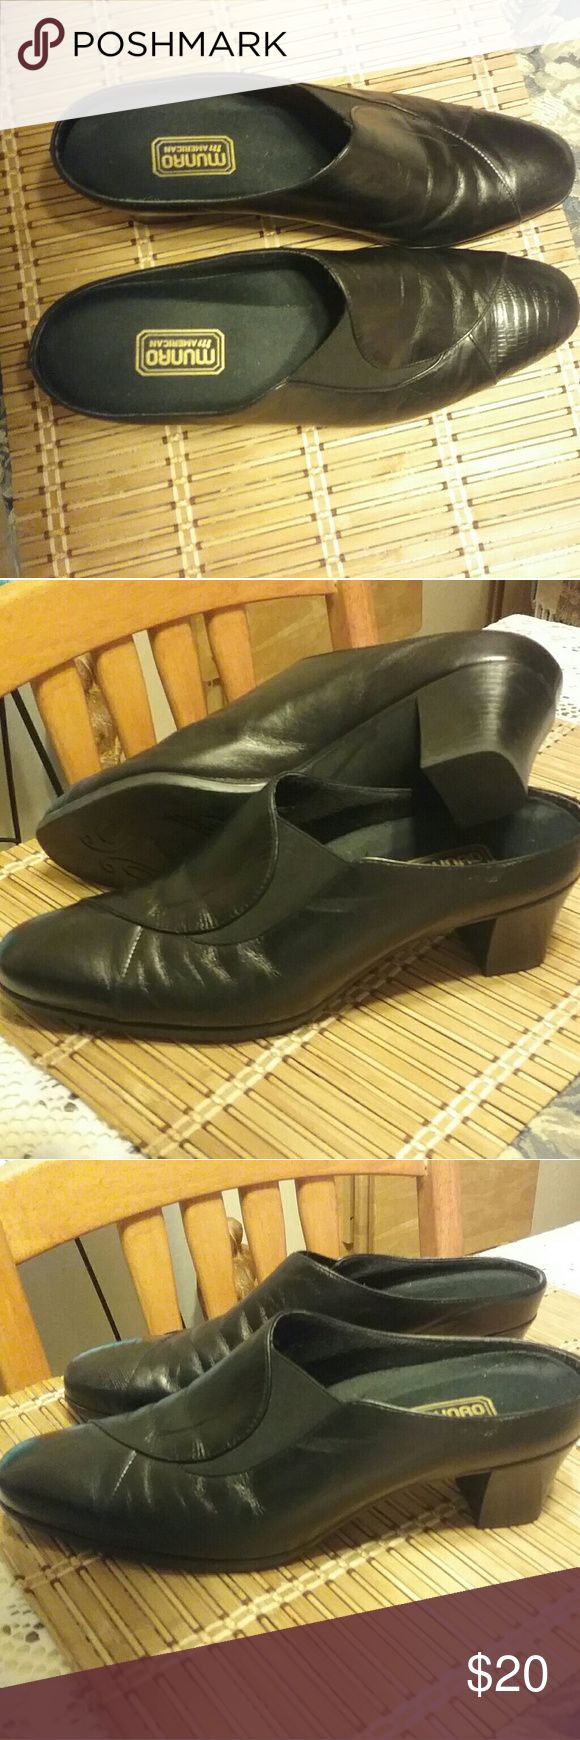 Munro American Women's Mule Style Shoes Soft leather Mule in perfect condition Women's size 9. Price firm. Munro American Shoes Mules & Clogs